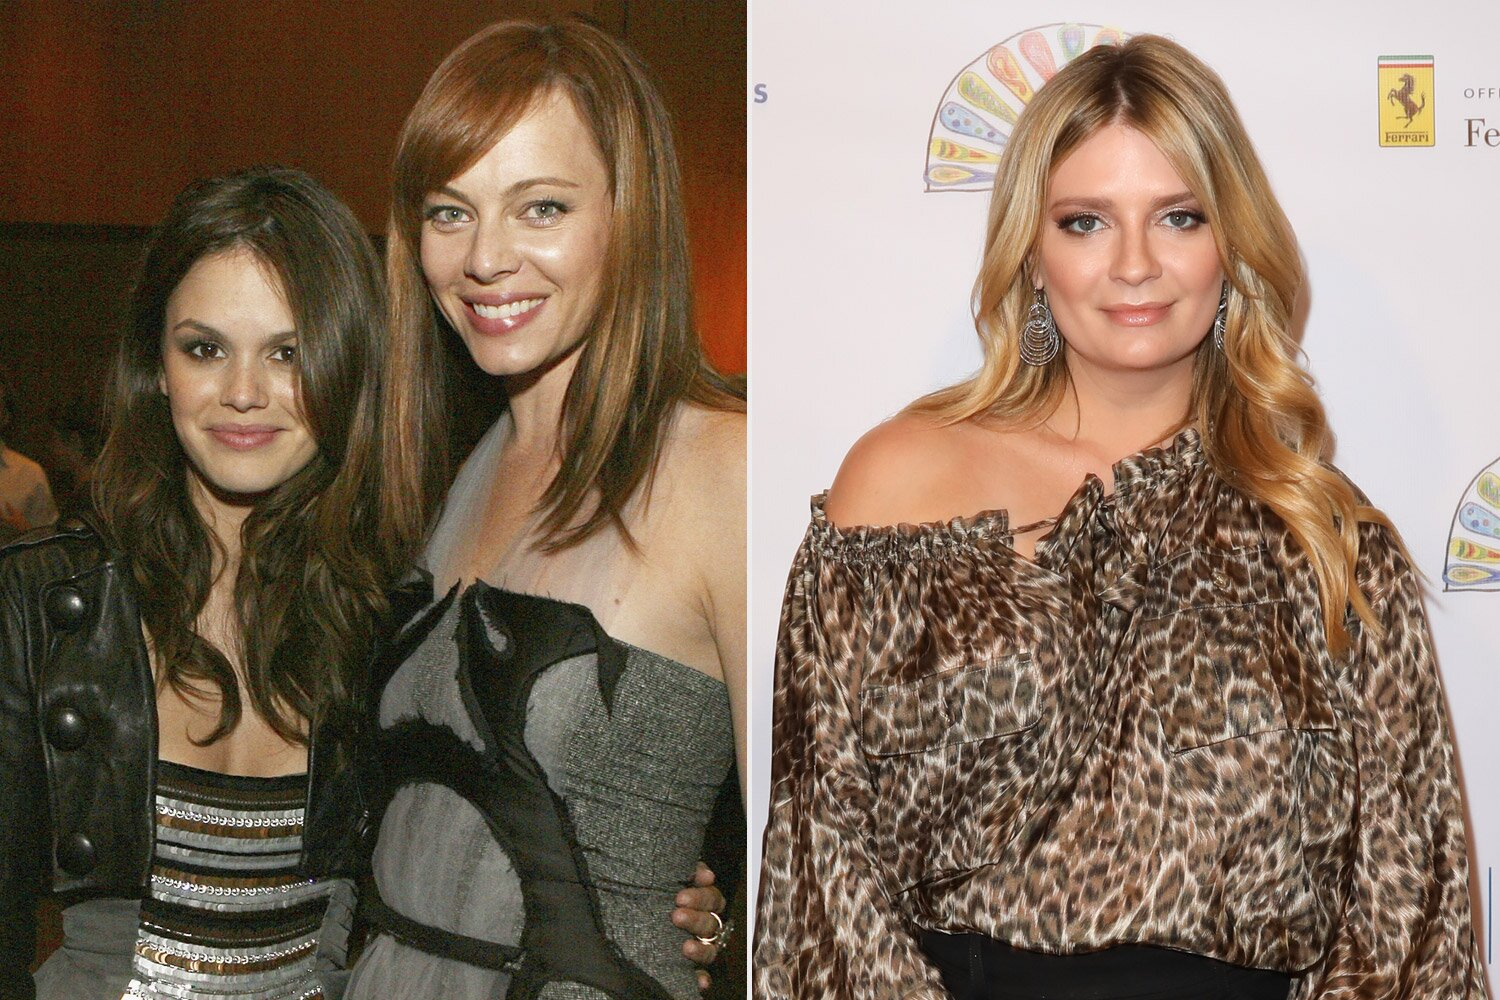 Rachel Bilson and Melinda Clarke respond to Mischa Barton remarks about her experience on The O.C.